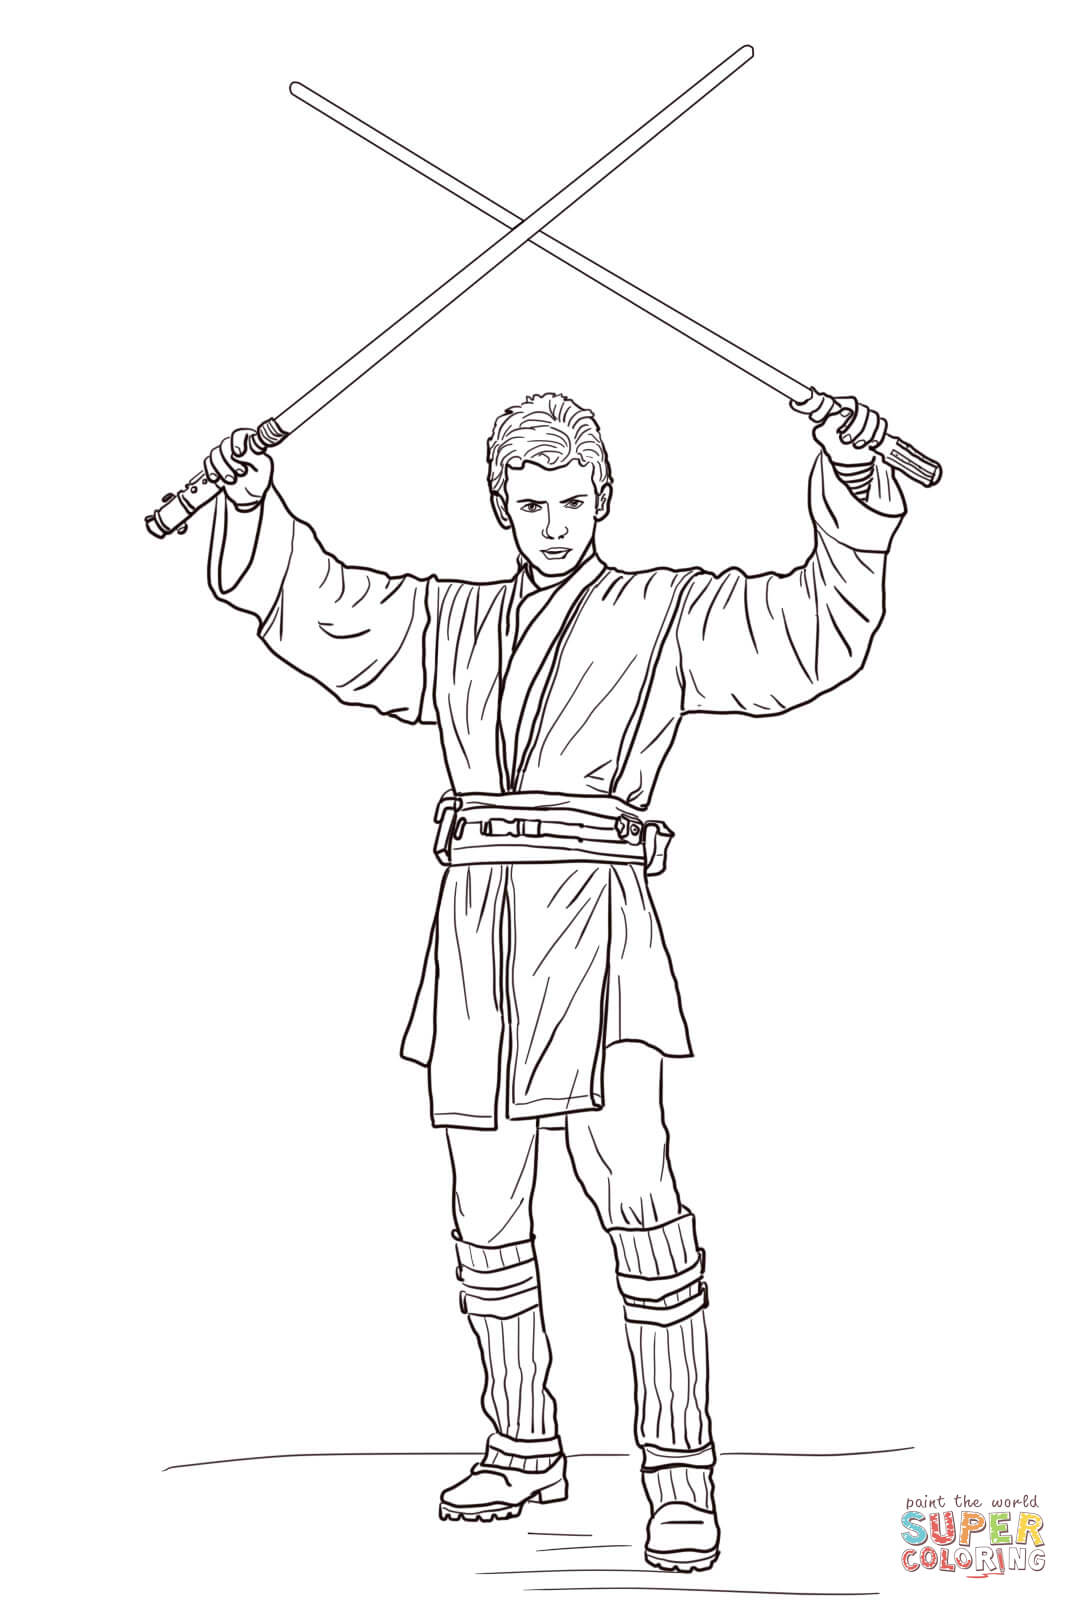 Star Wars Luke Skywalker Coloring Pages Inside